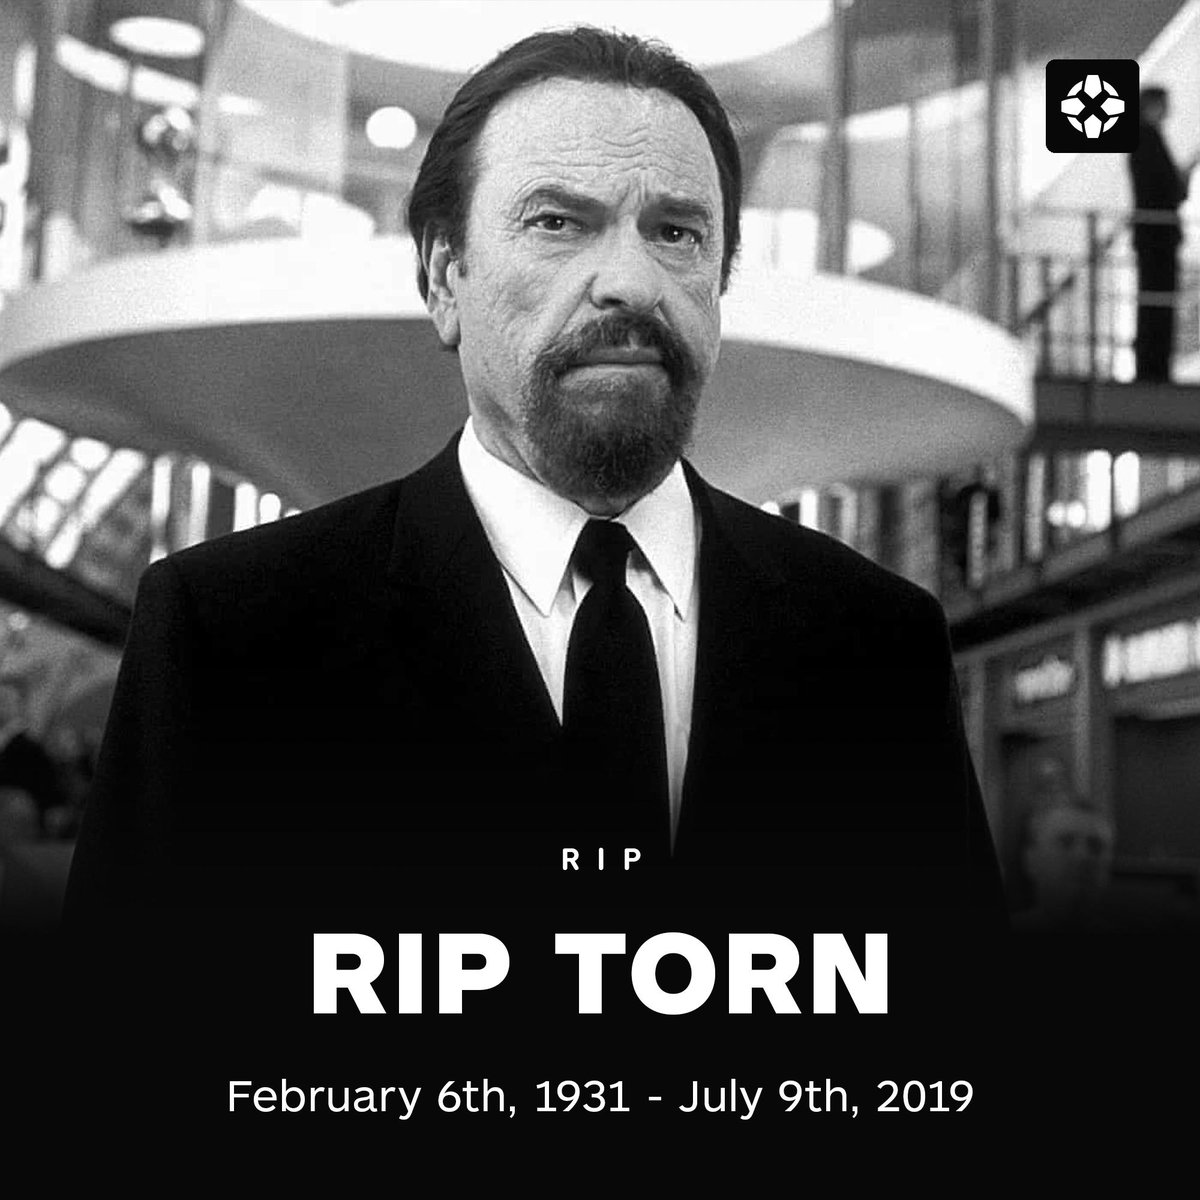 Legendary actor Rip Torn, best known for his roles in Men in Black, Dodgeball and The Larry Sanders Show, has died at the age of 88.